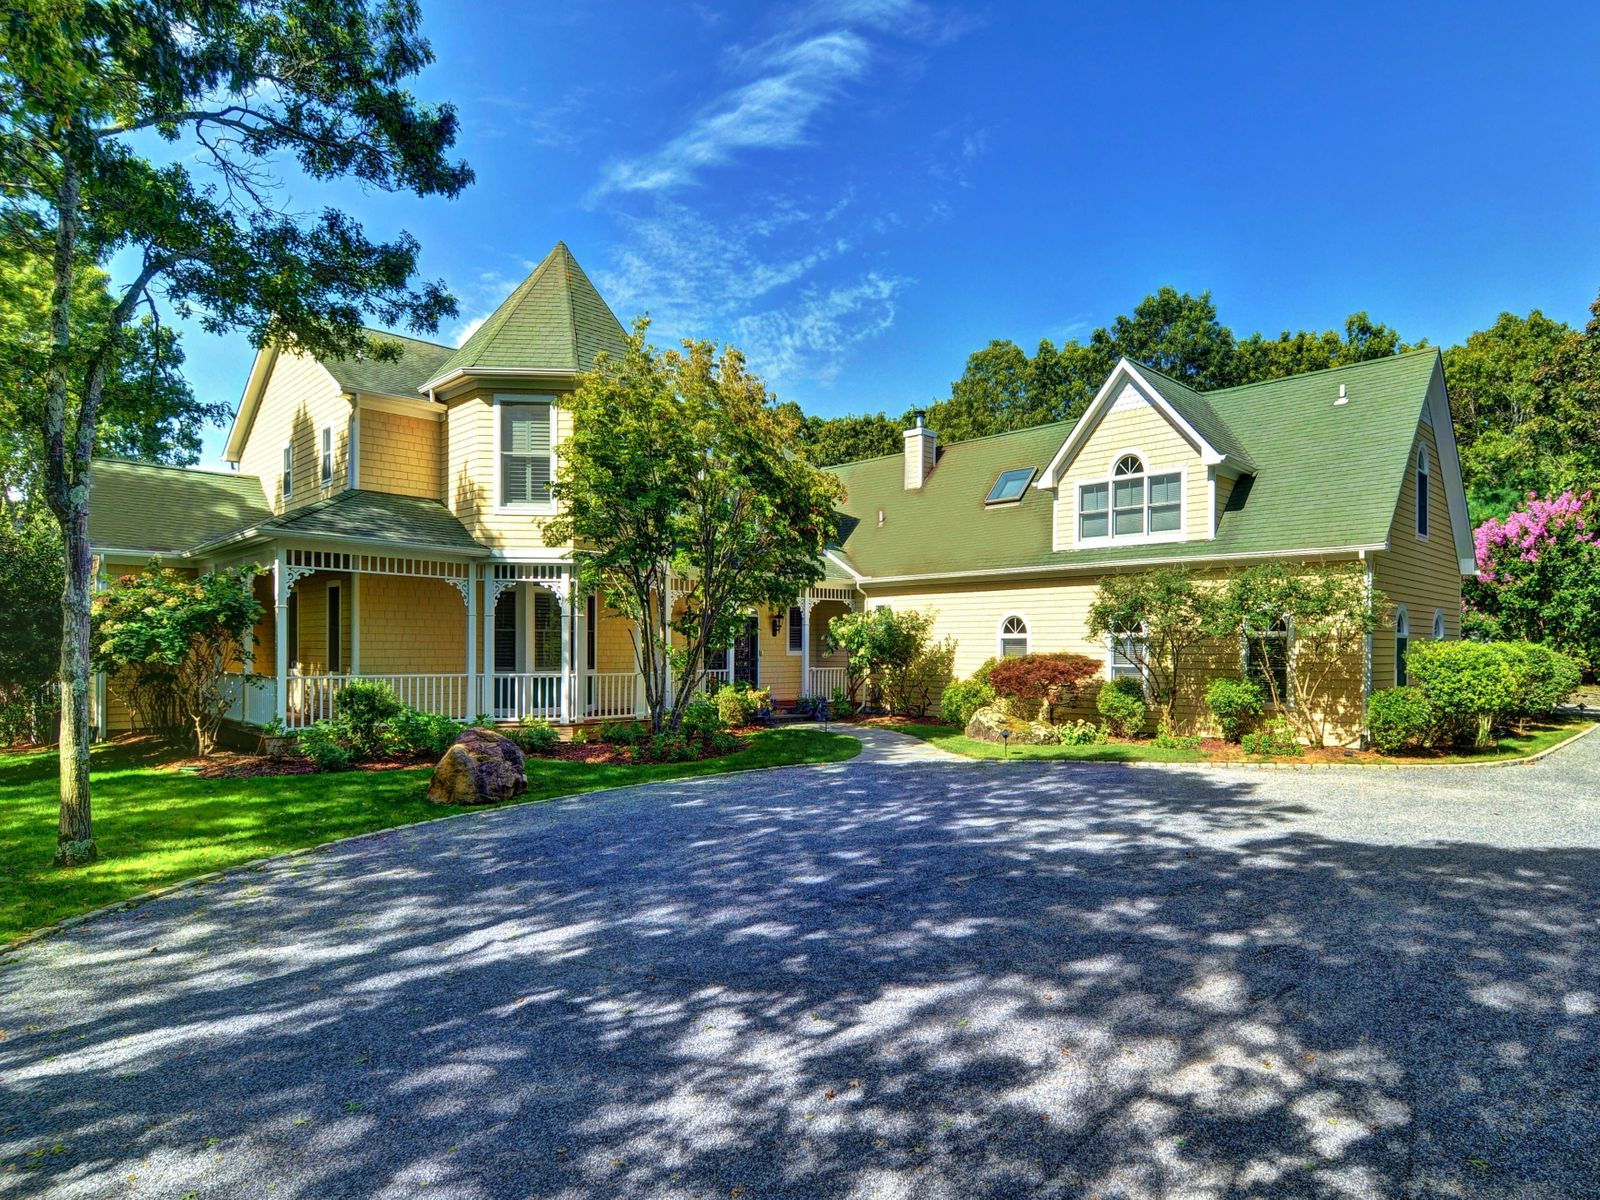 Special Retreat with Pool and Tennis, East Hampton NY Single Family Home - Hamptons Real Estate